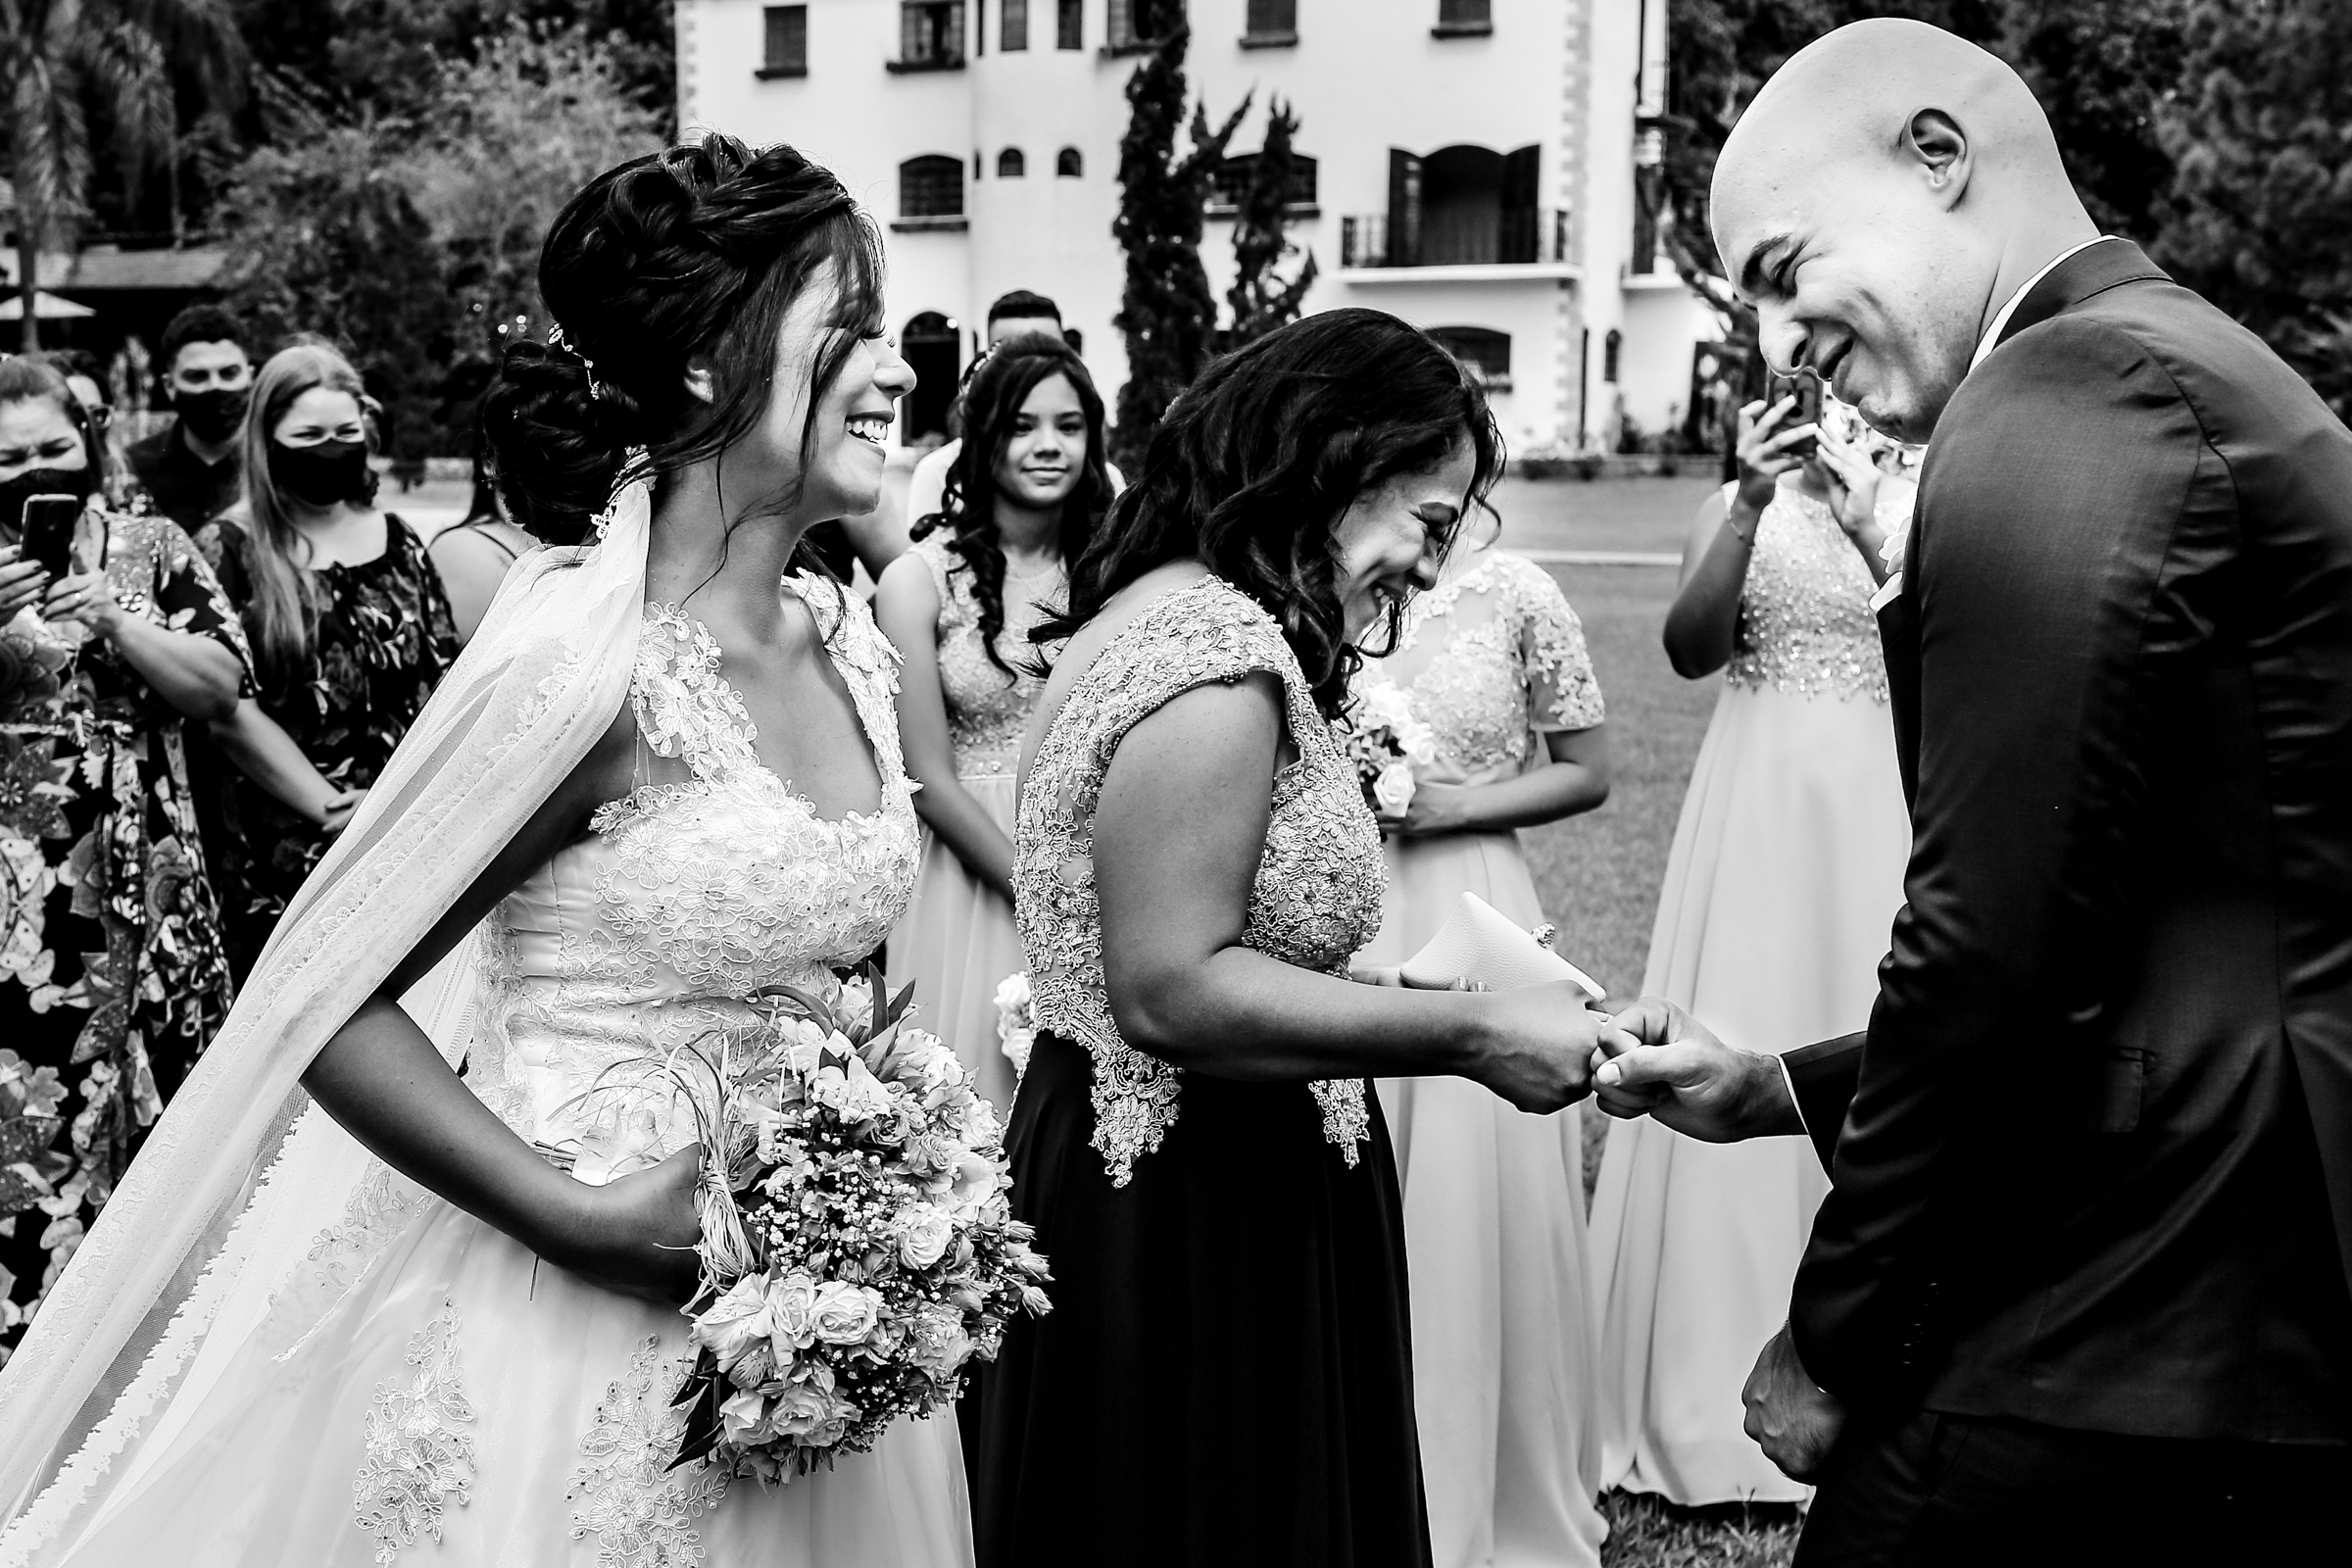 Groom gets fist bump from his mom while smiling bride looks on  - photo by Área da Fotografia - Brazil